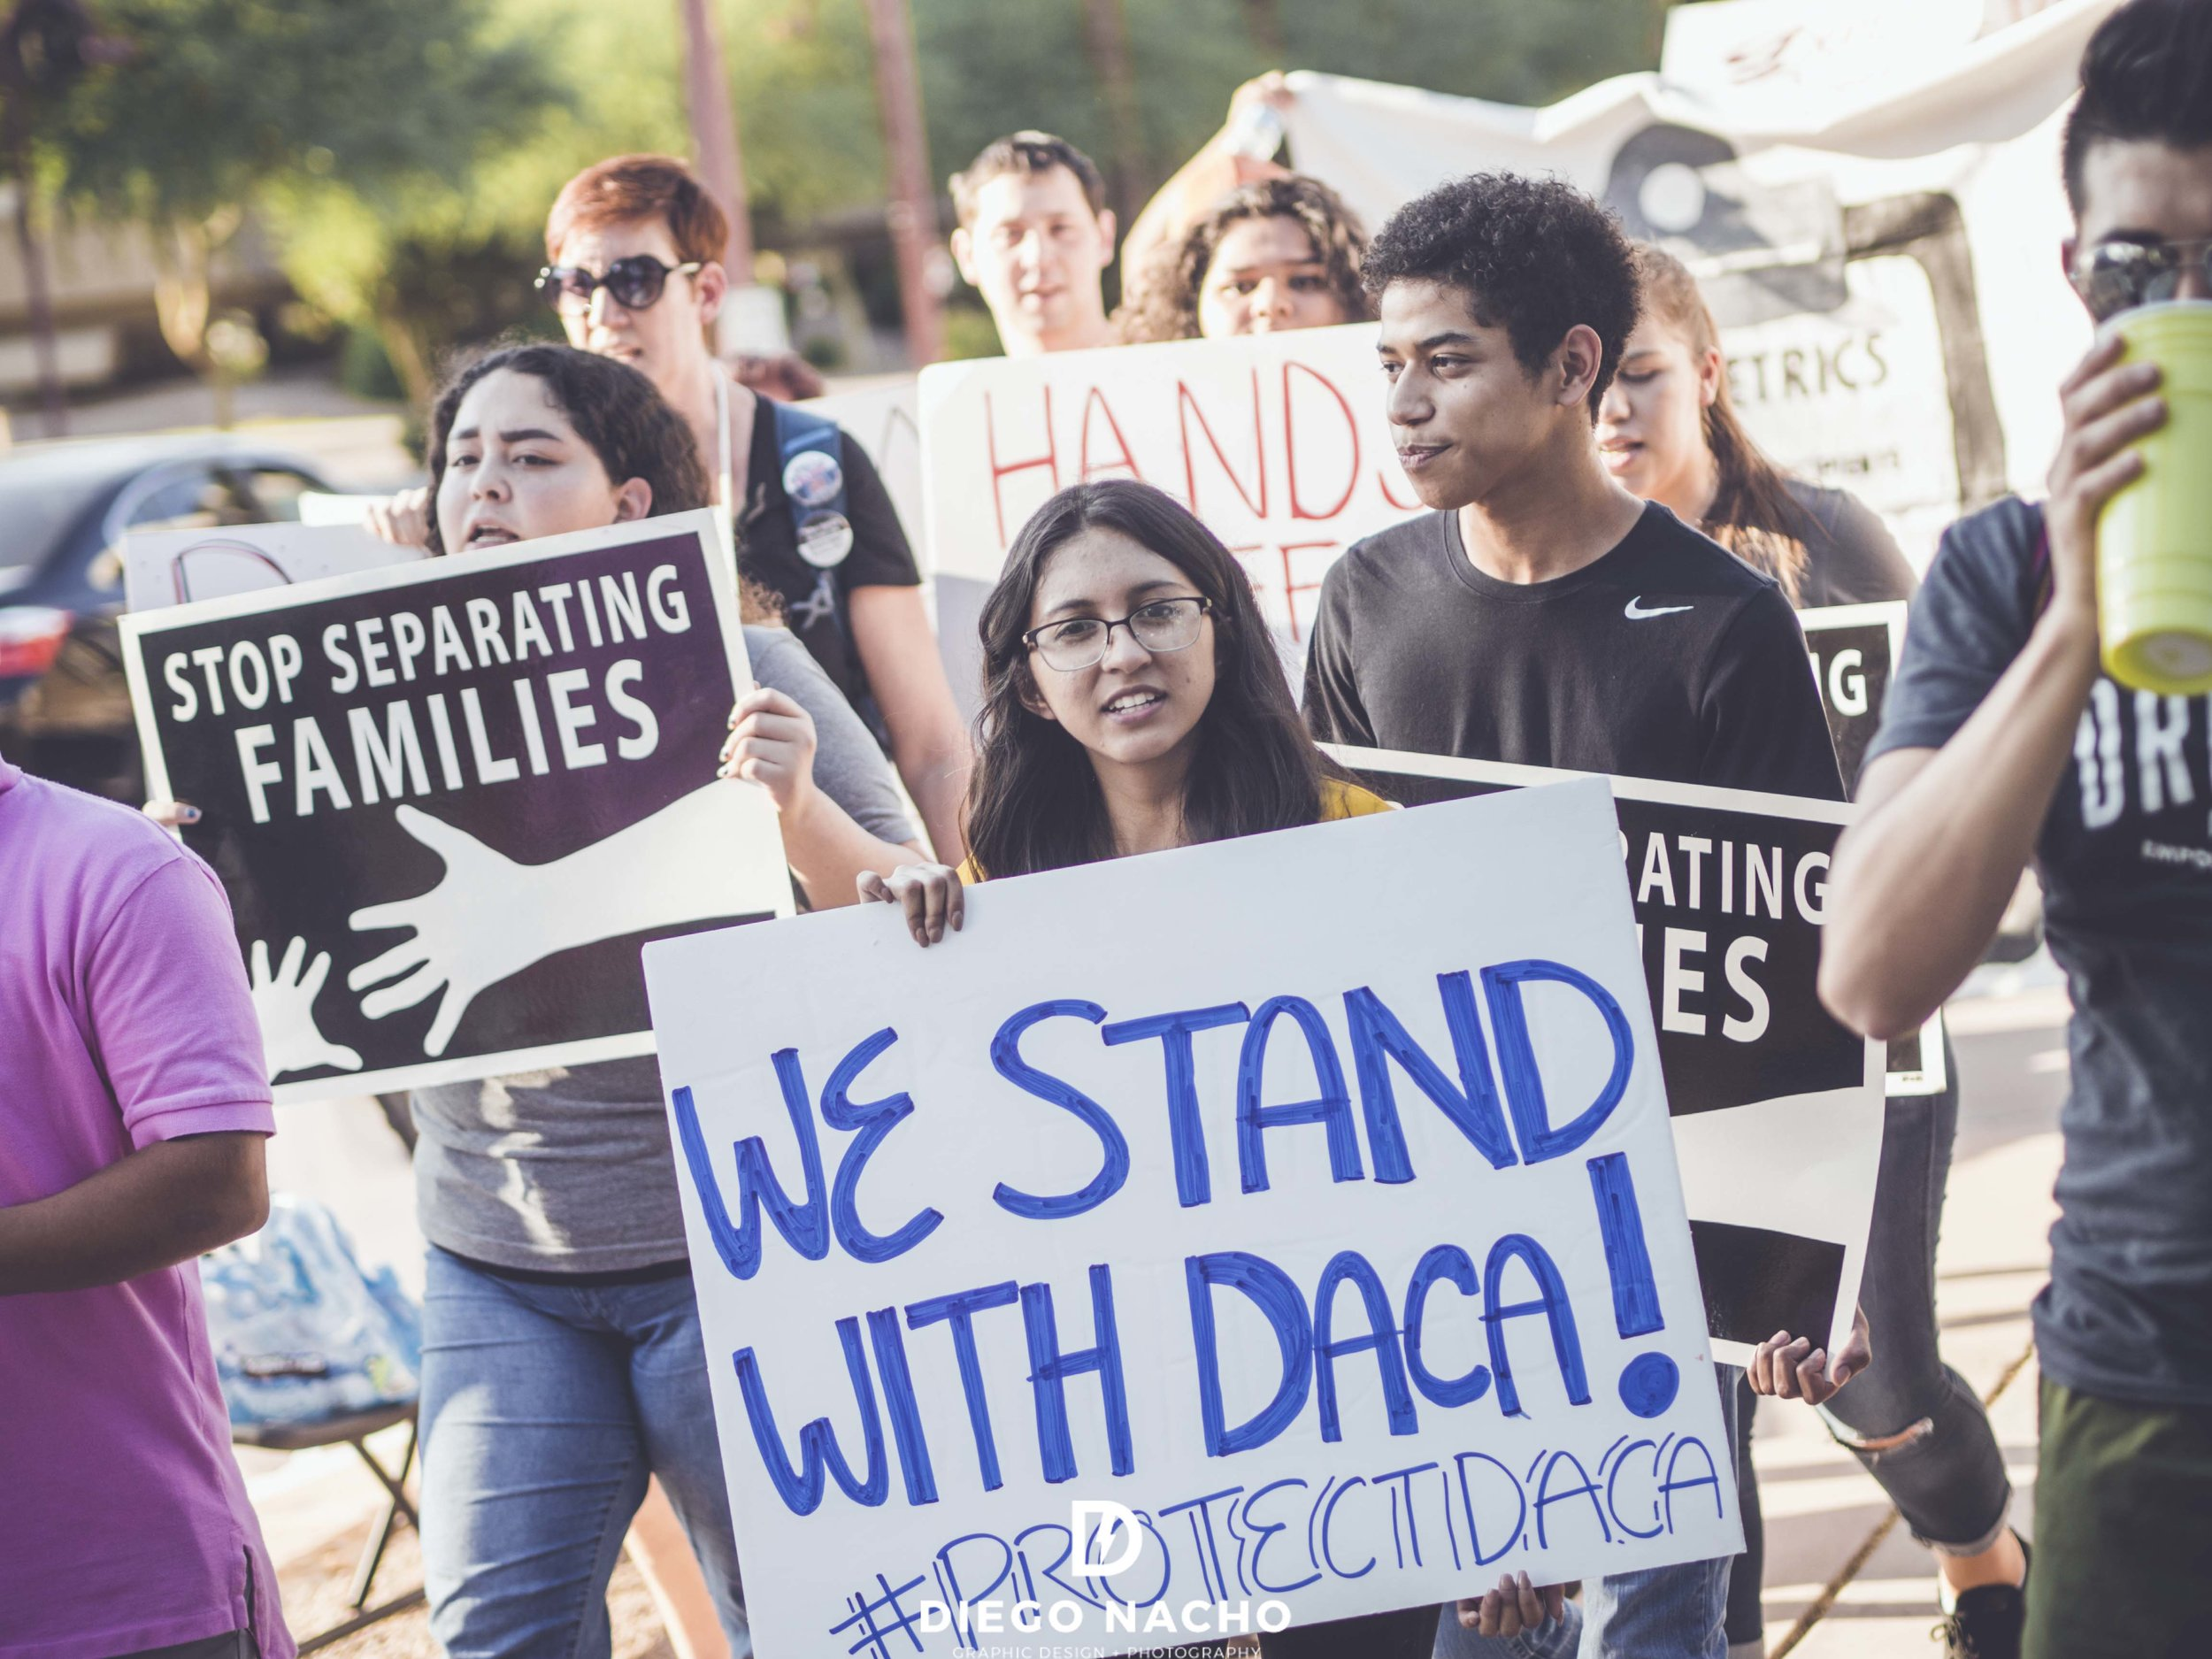 08-31-2017 Protect DACA Third Day of Action_2554.jpg